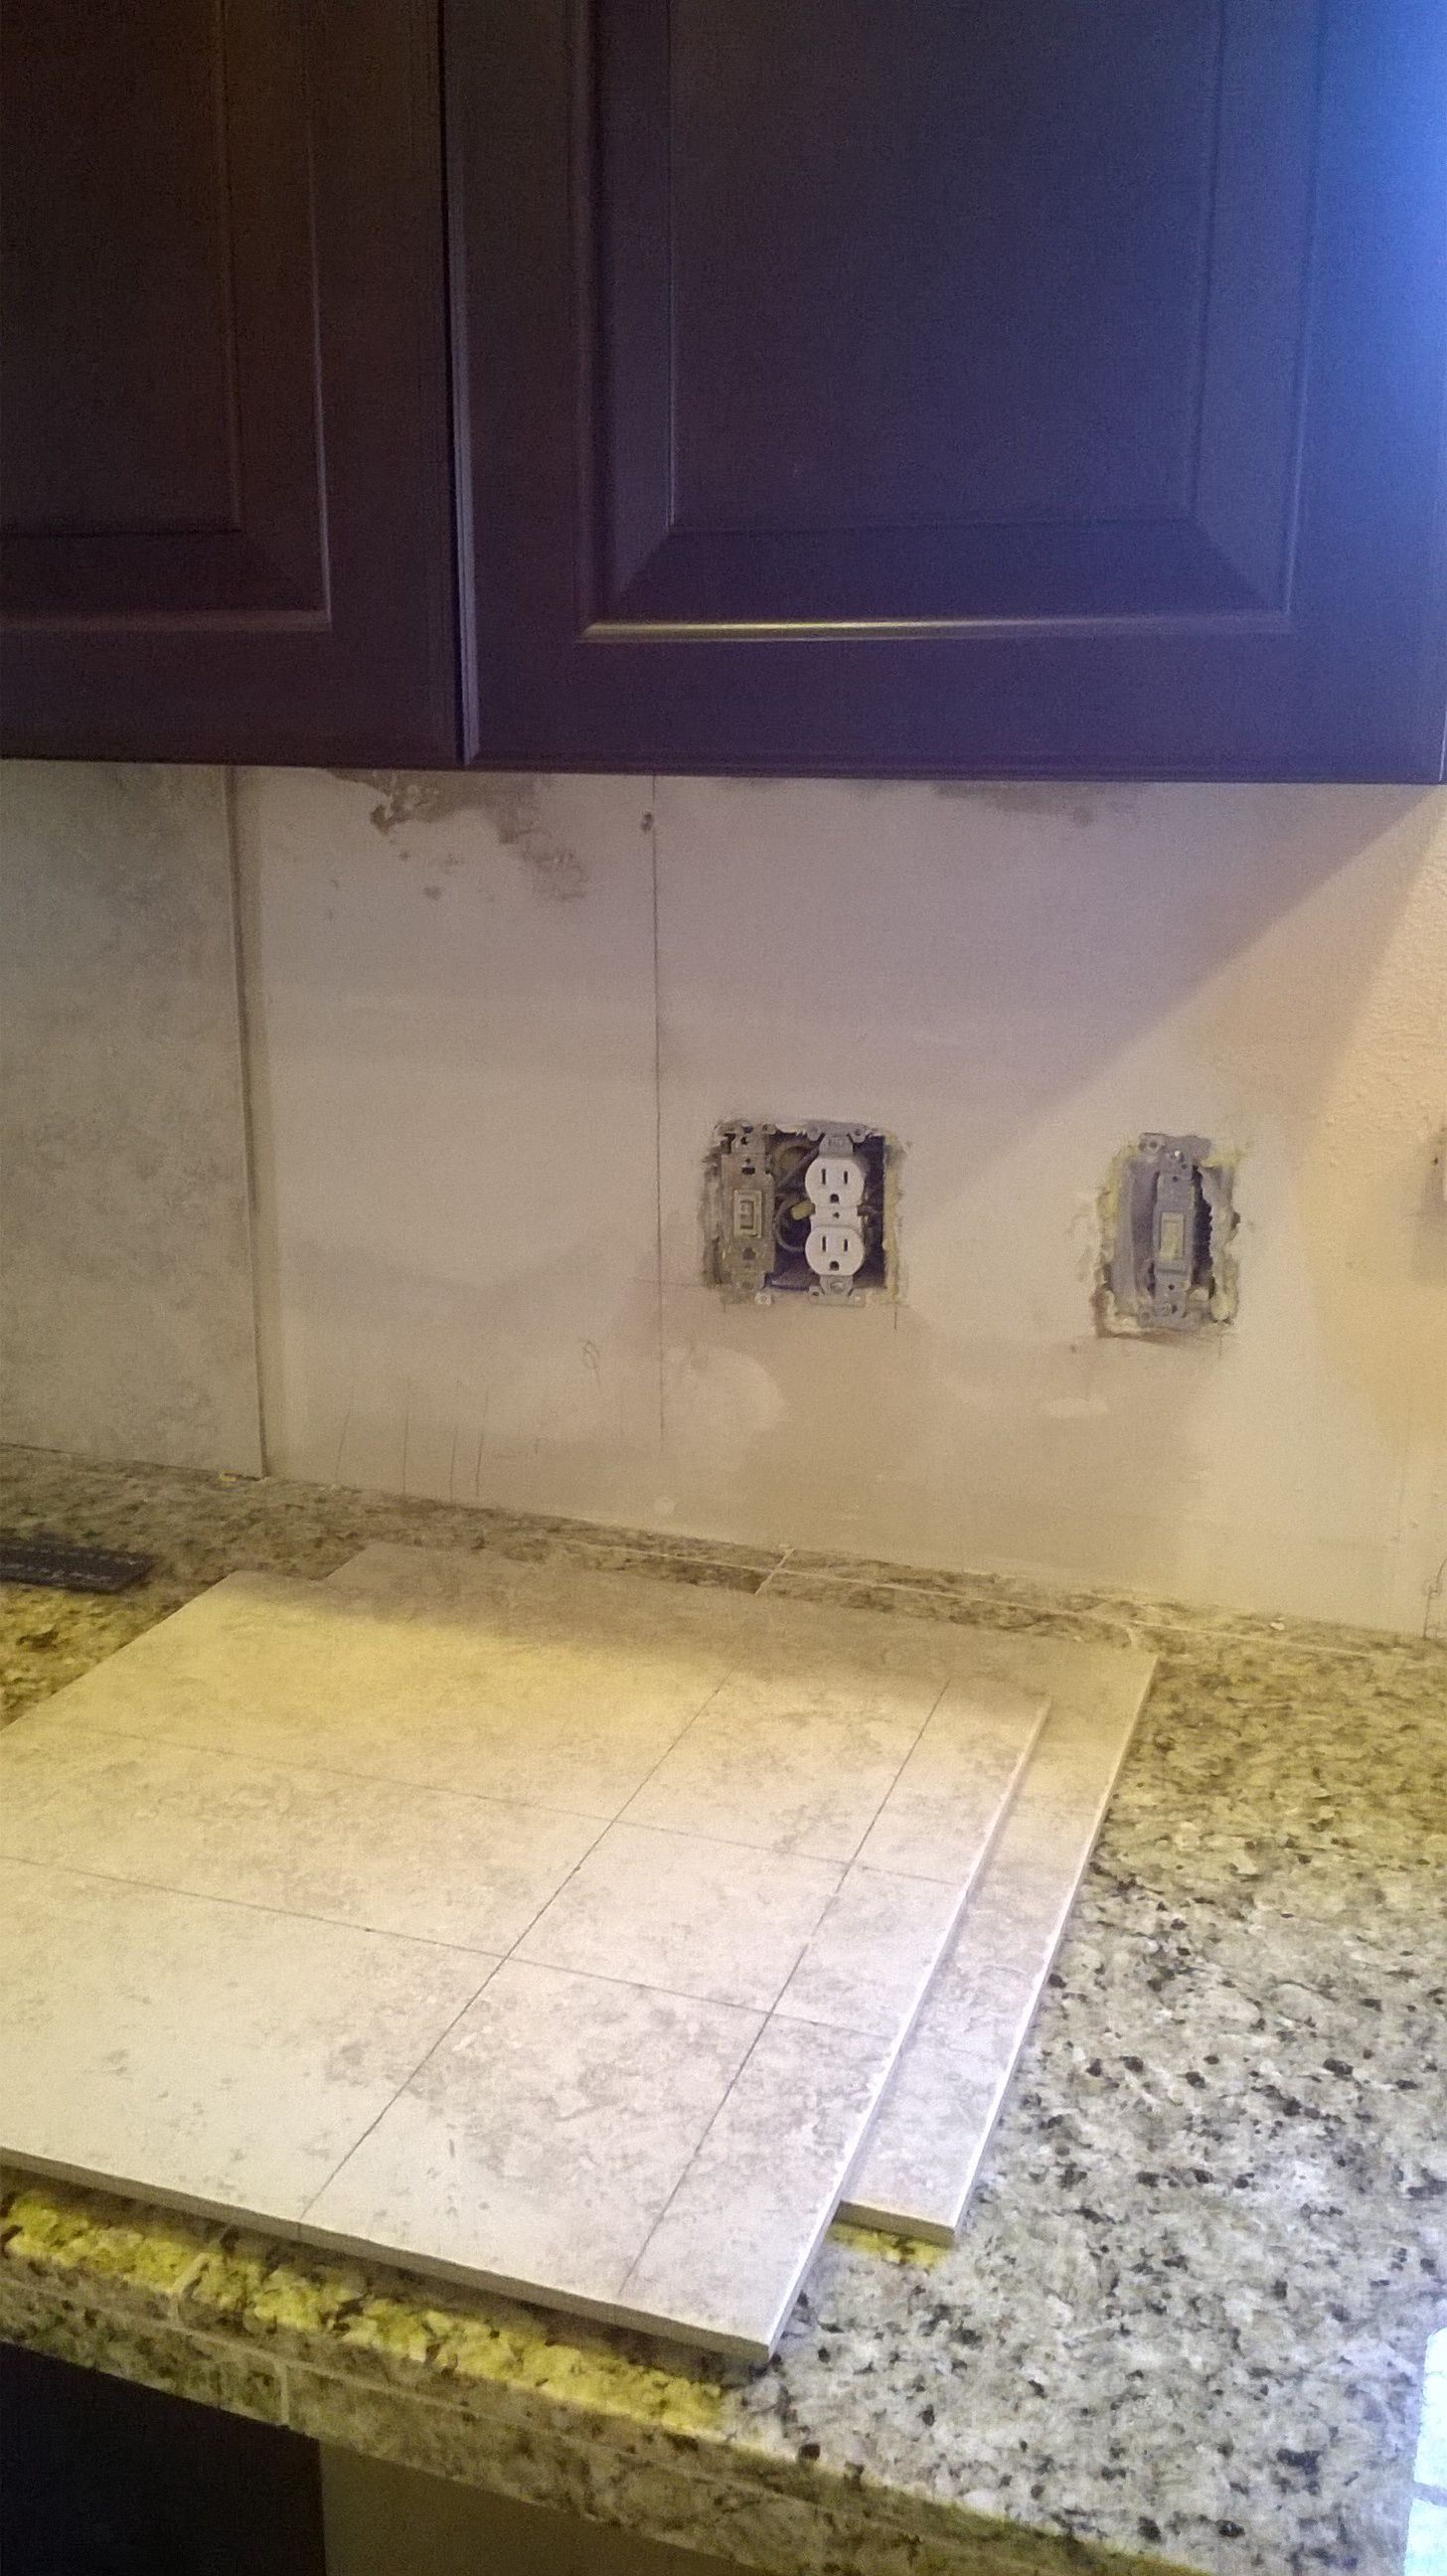 Measure Distance From Sides Of Tile To Where The Electric Socket